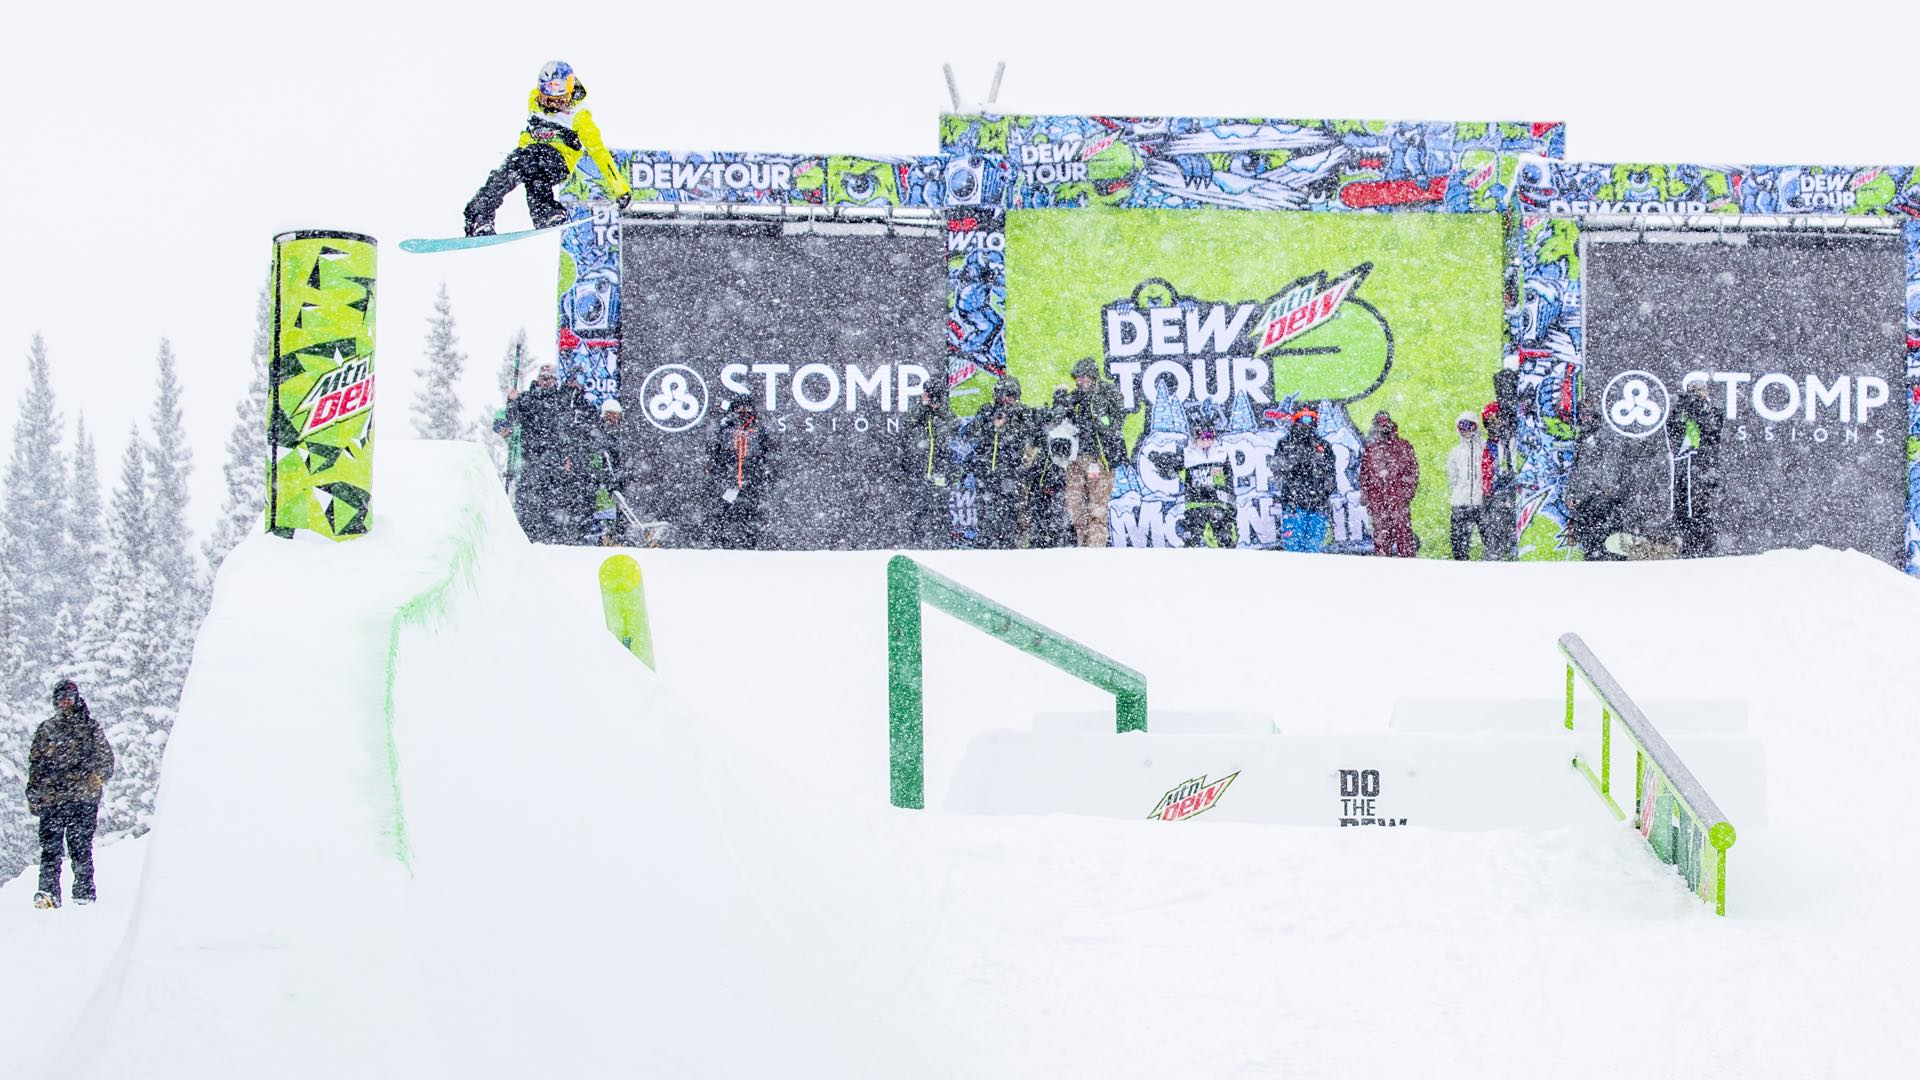 Dew tour article header